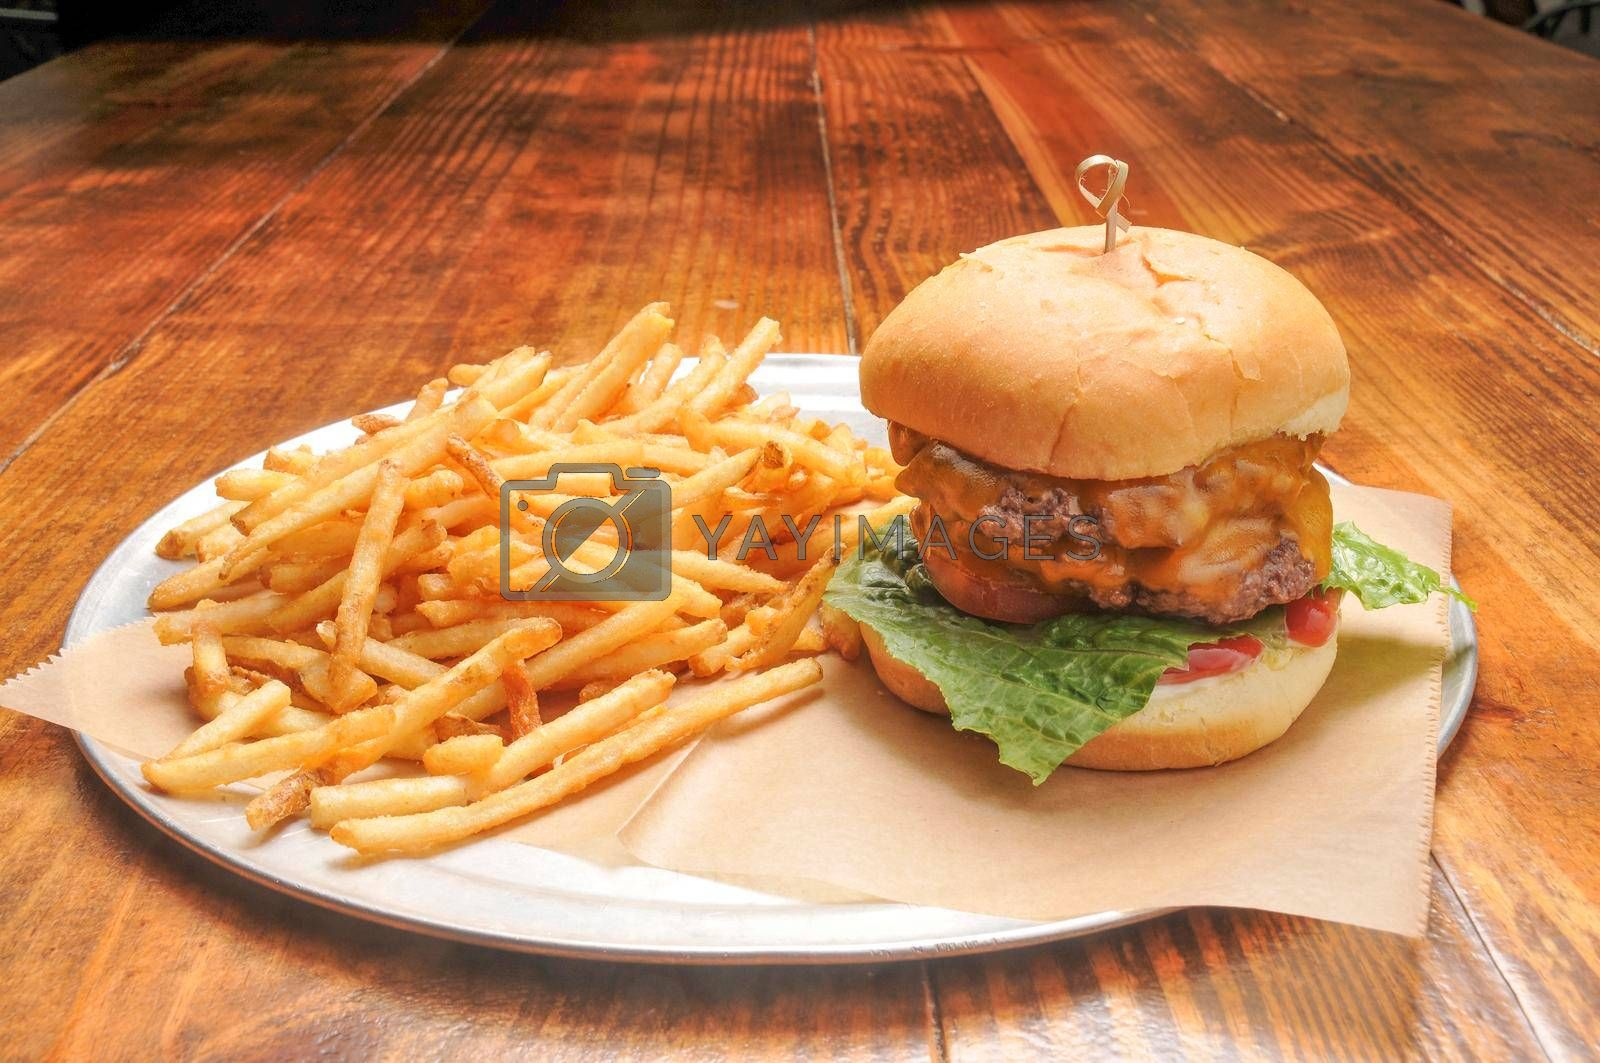 Delicious cheeseburger and an order of French fries.